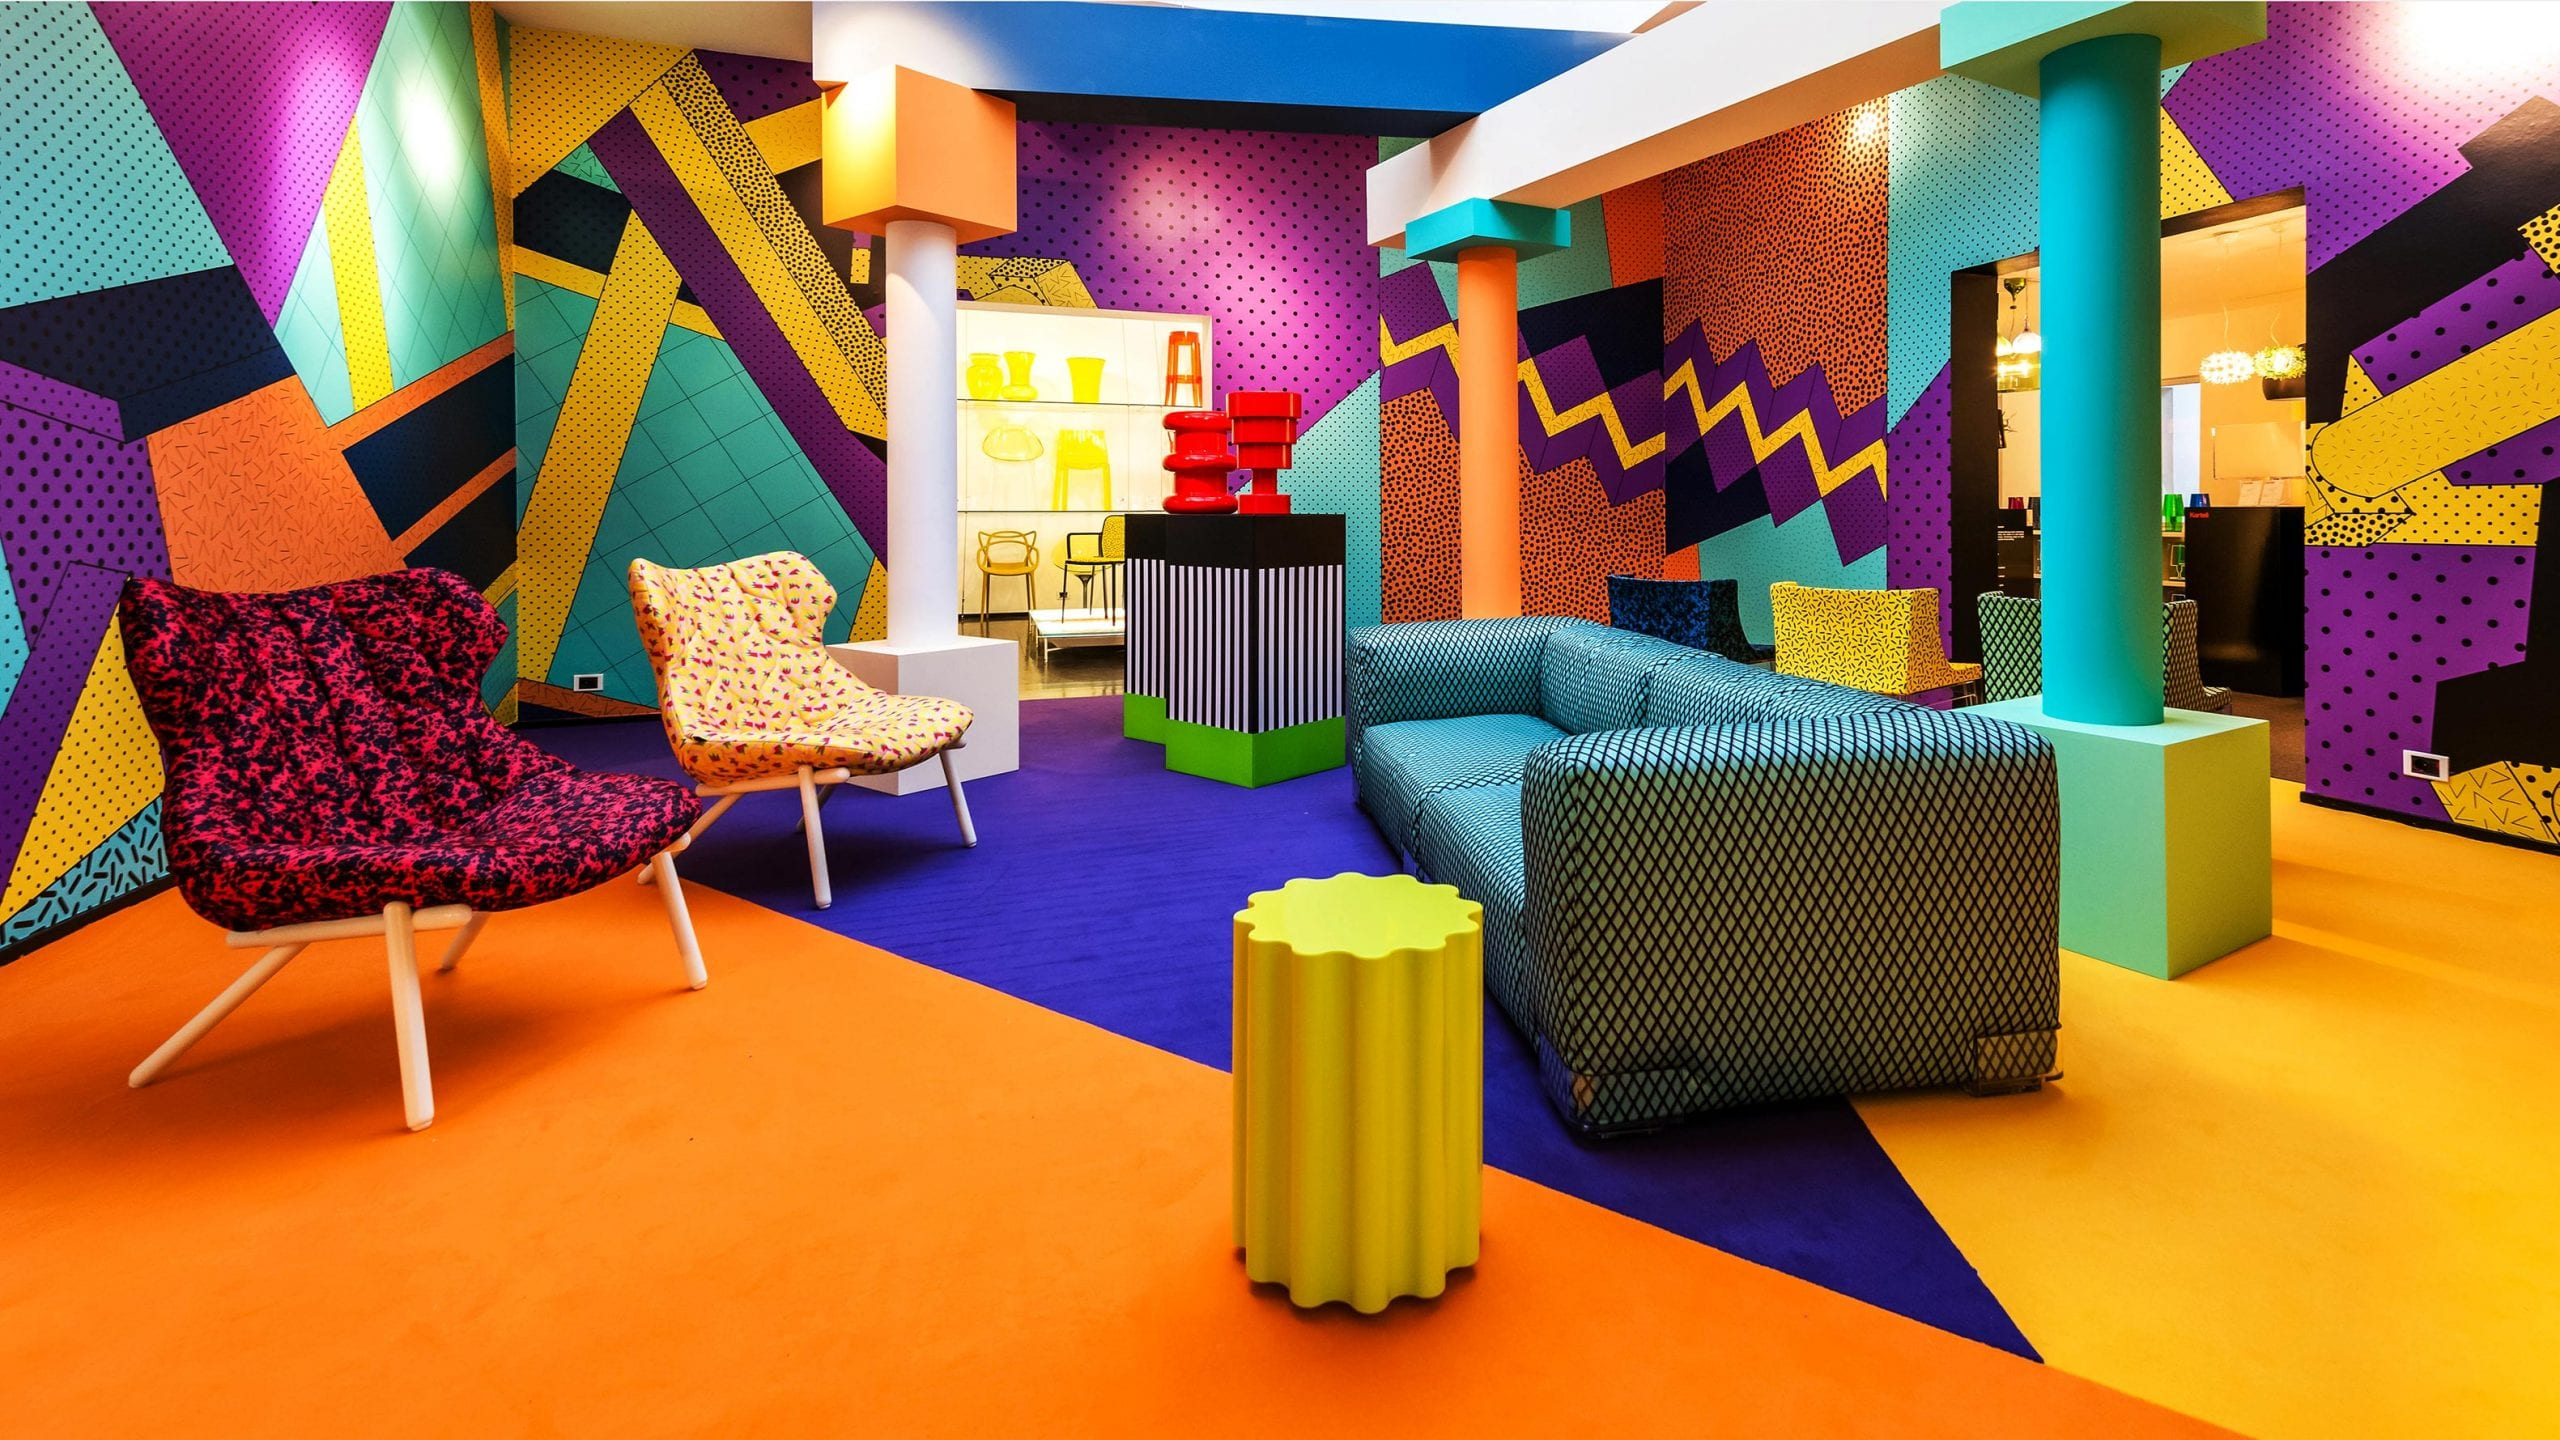 Memphis Design - '80s Interior Design Trends